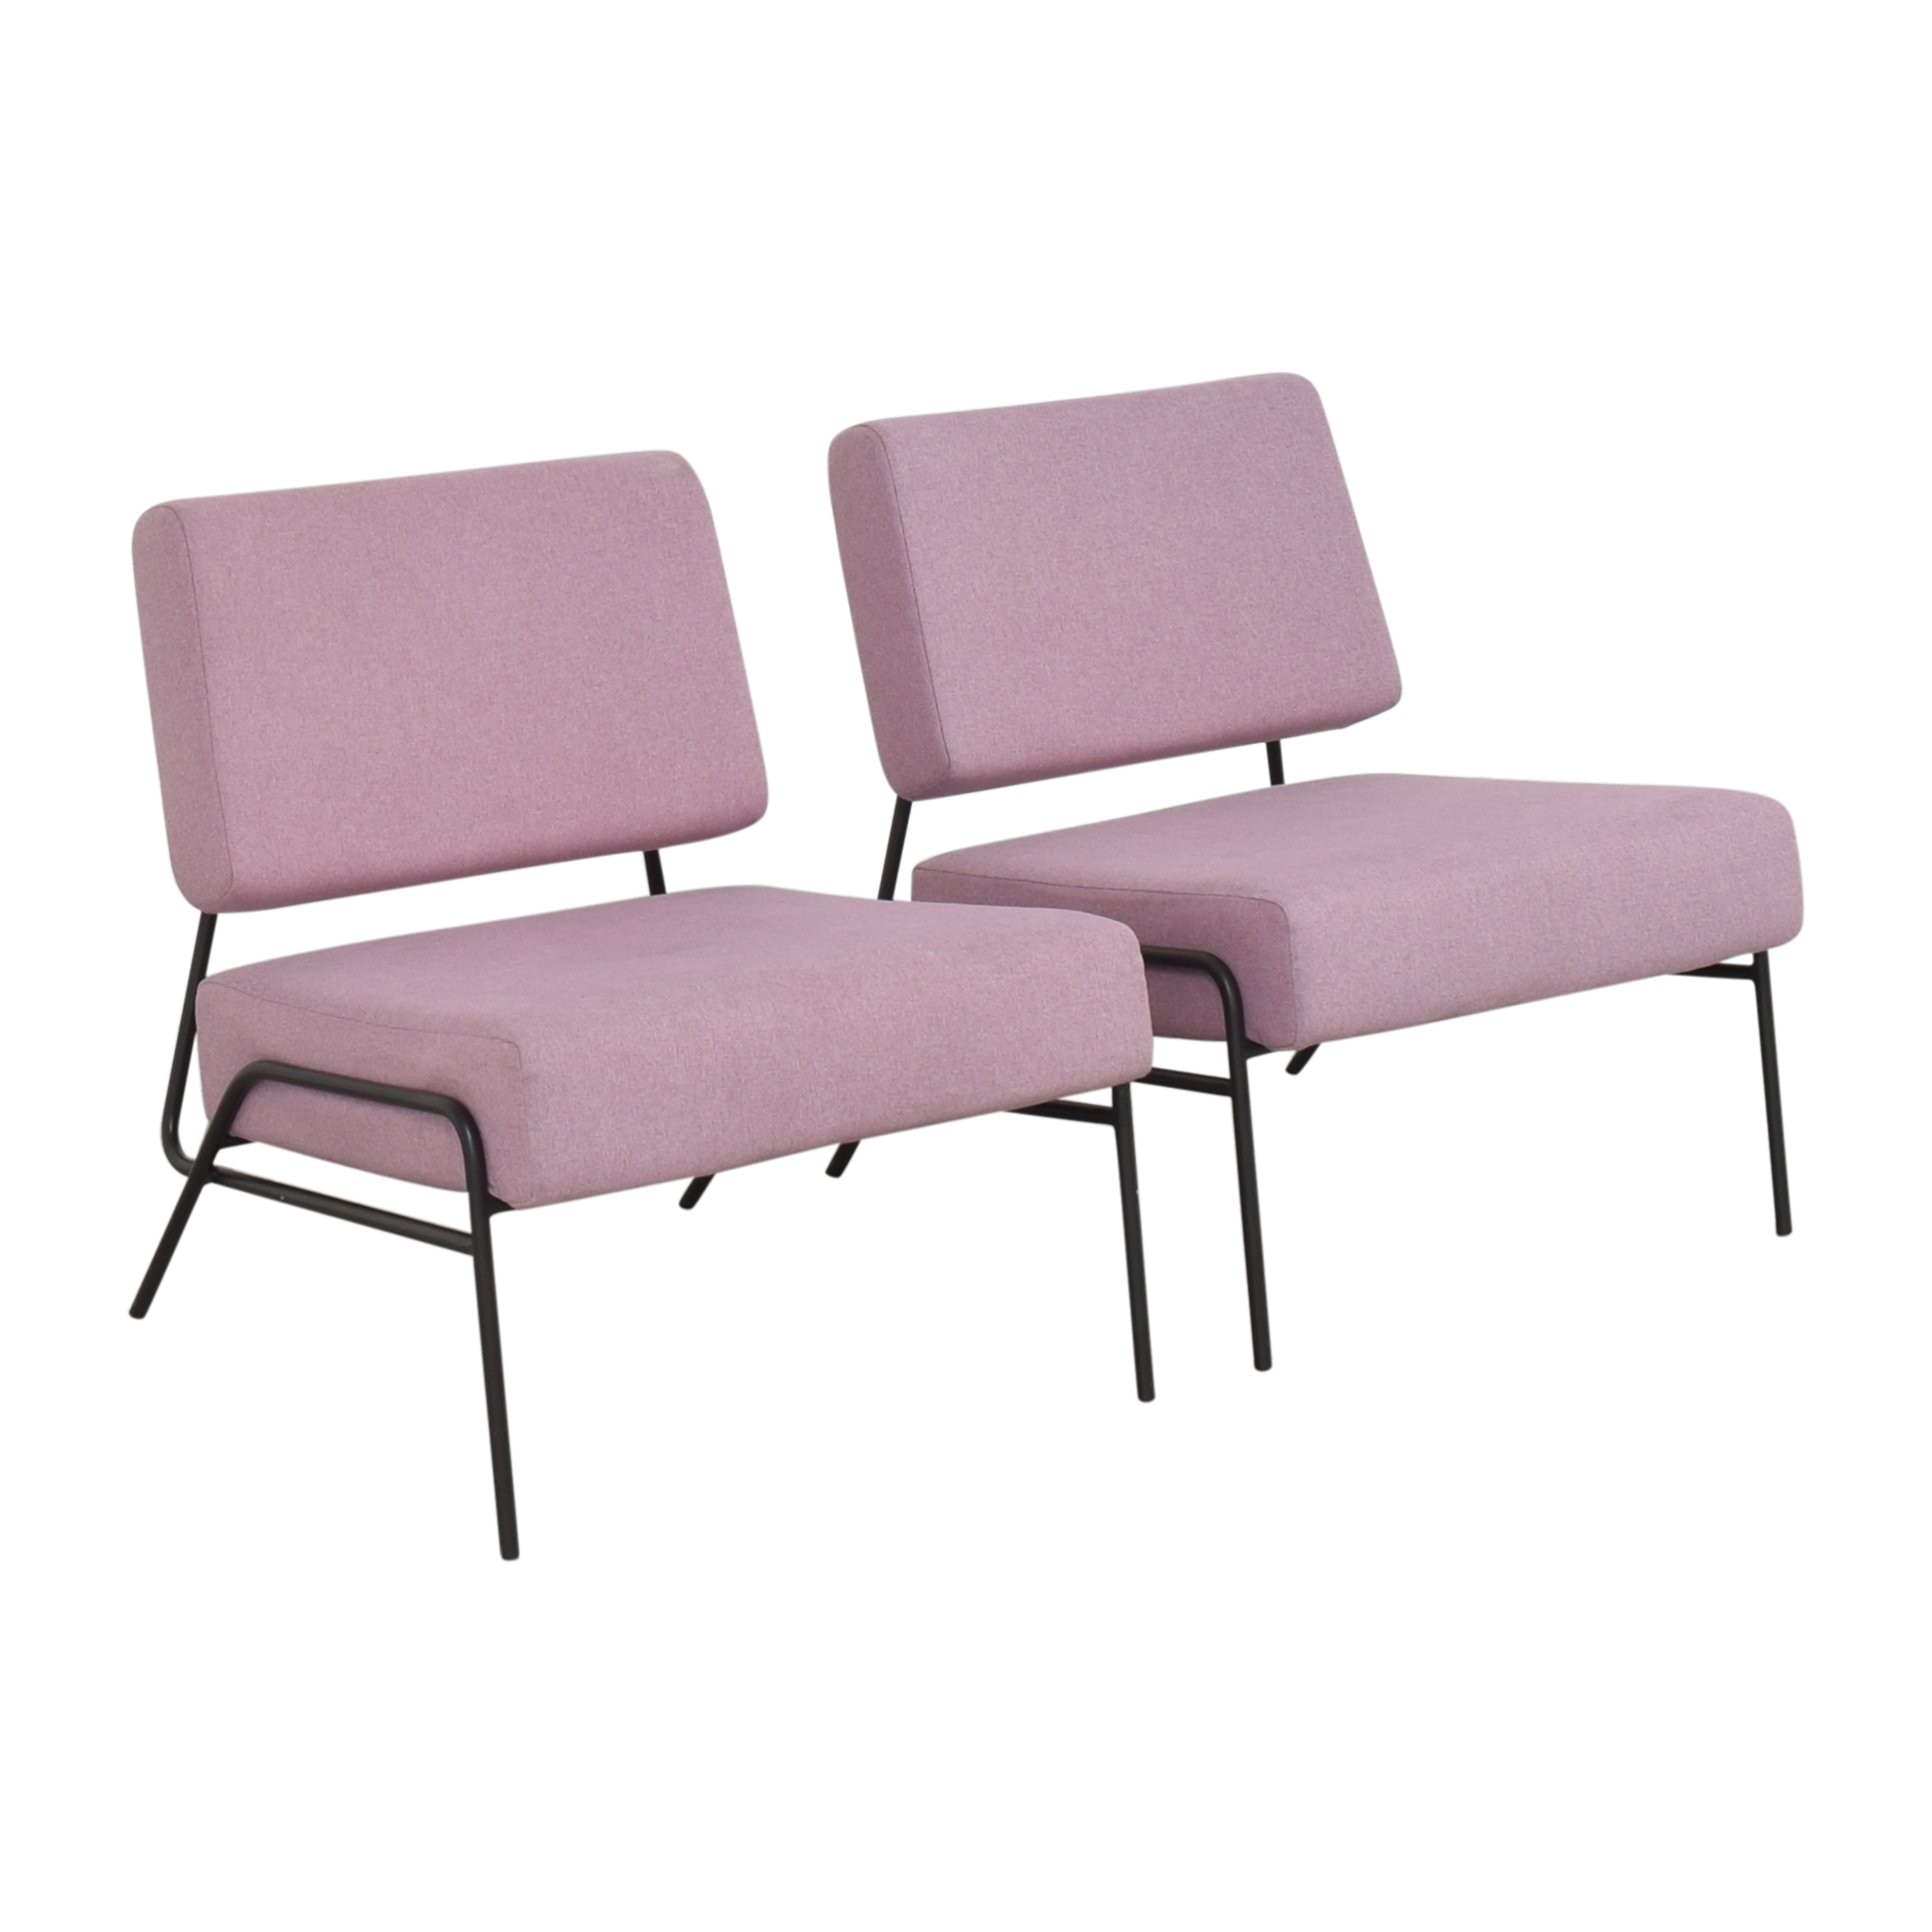 West Elm West Elm Wire Frame Slipper Chairs on sale